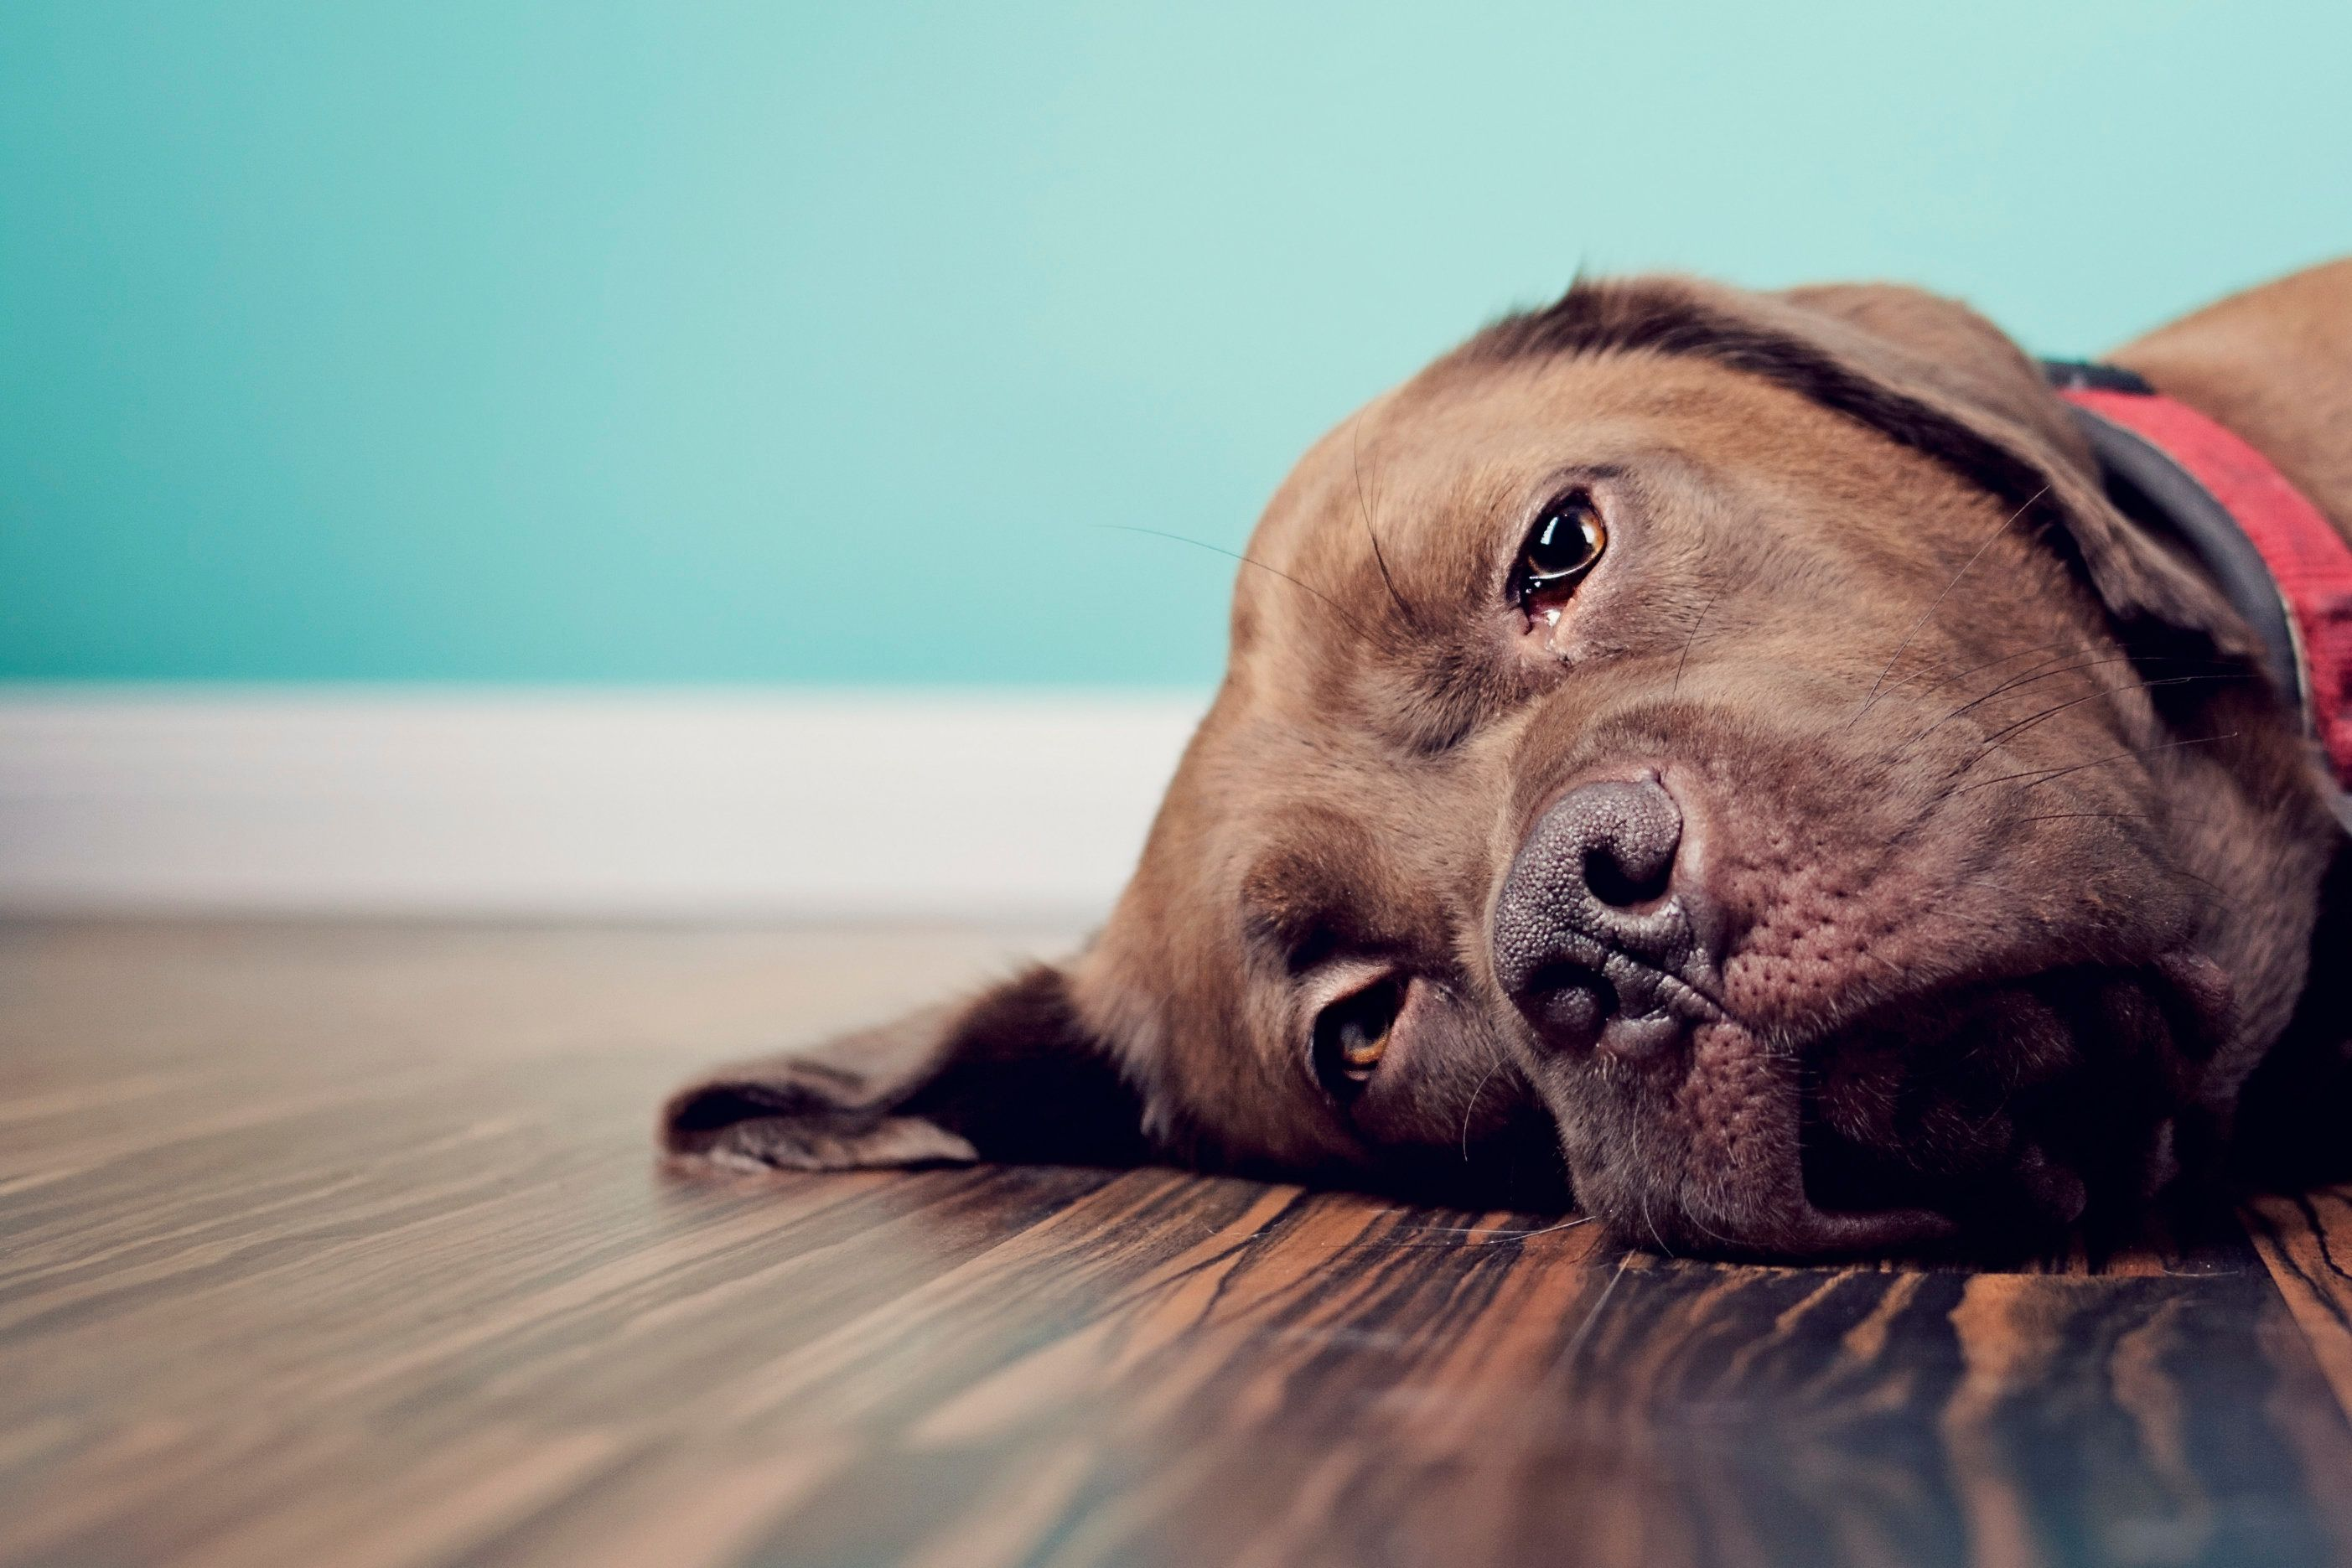 """""""Pets can grieve to varying degrees when they lose a human or animal companion,"""" said Kate..."""